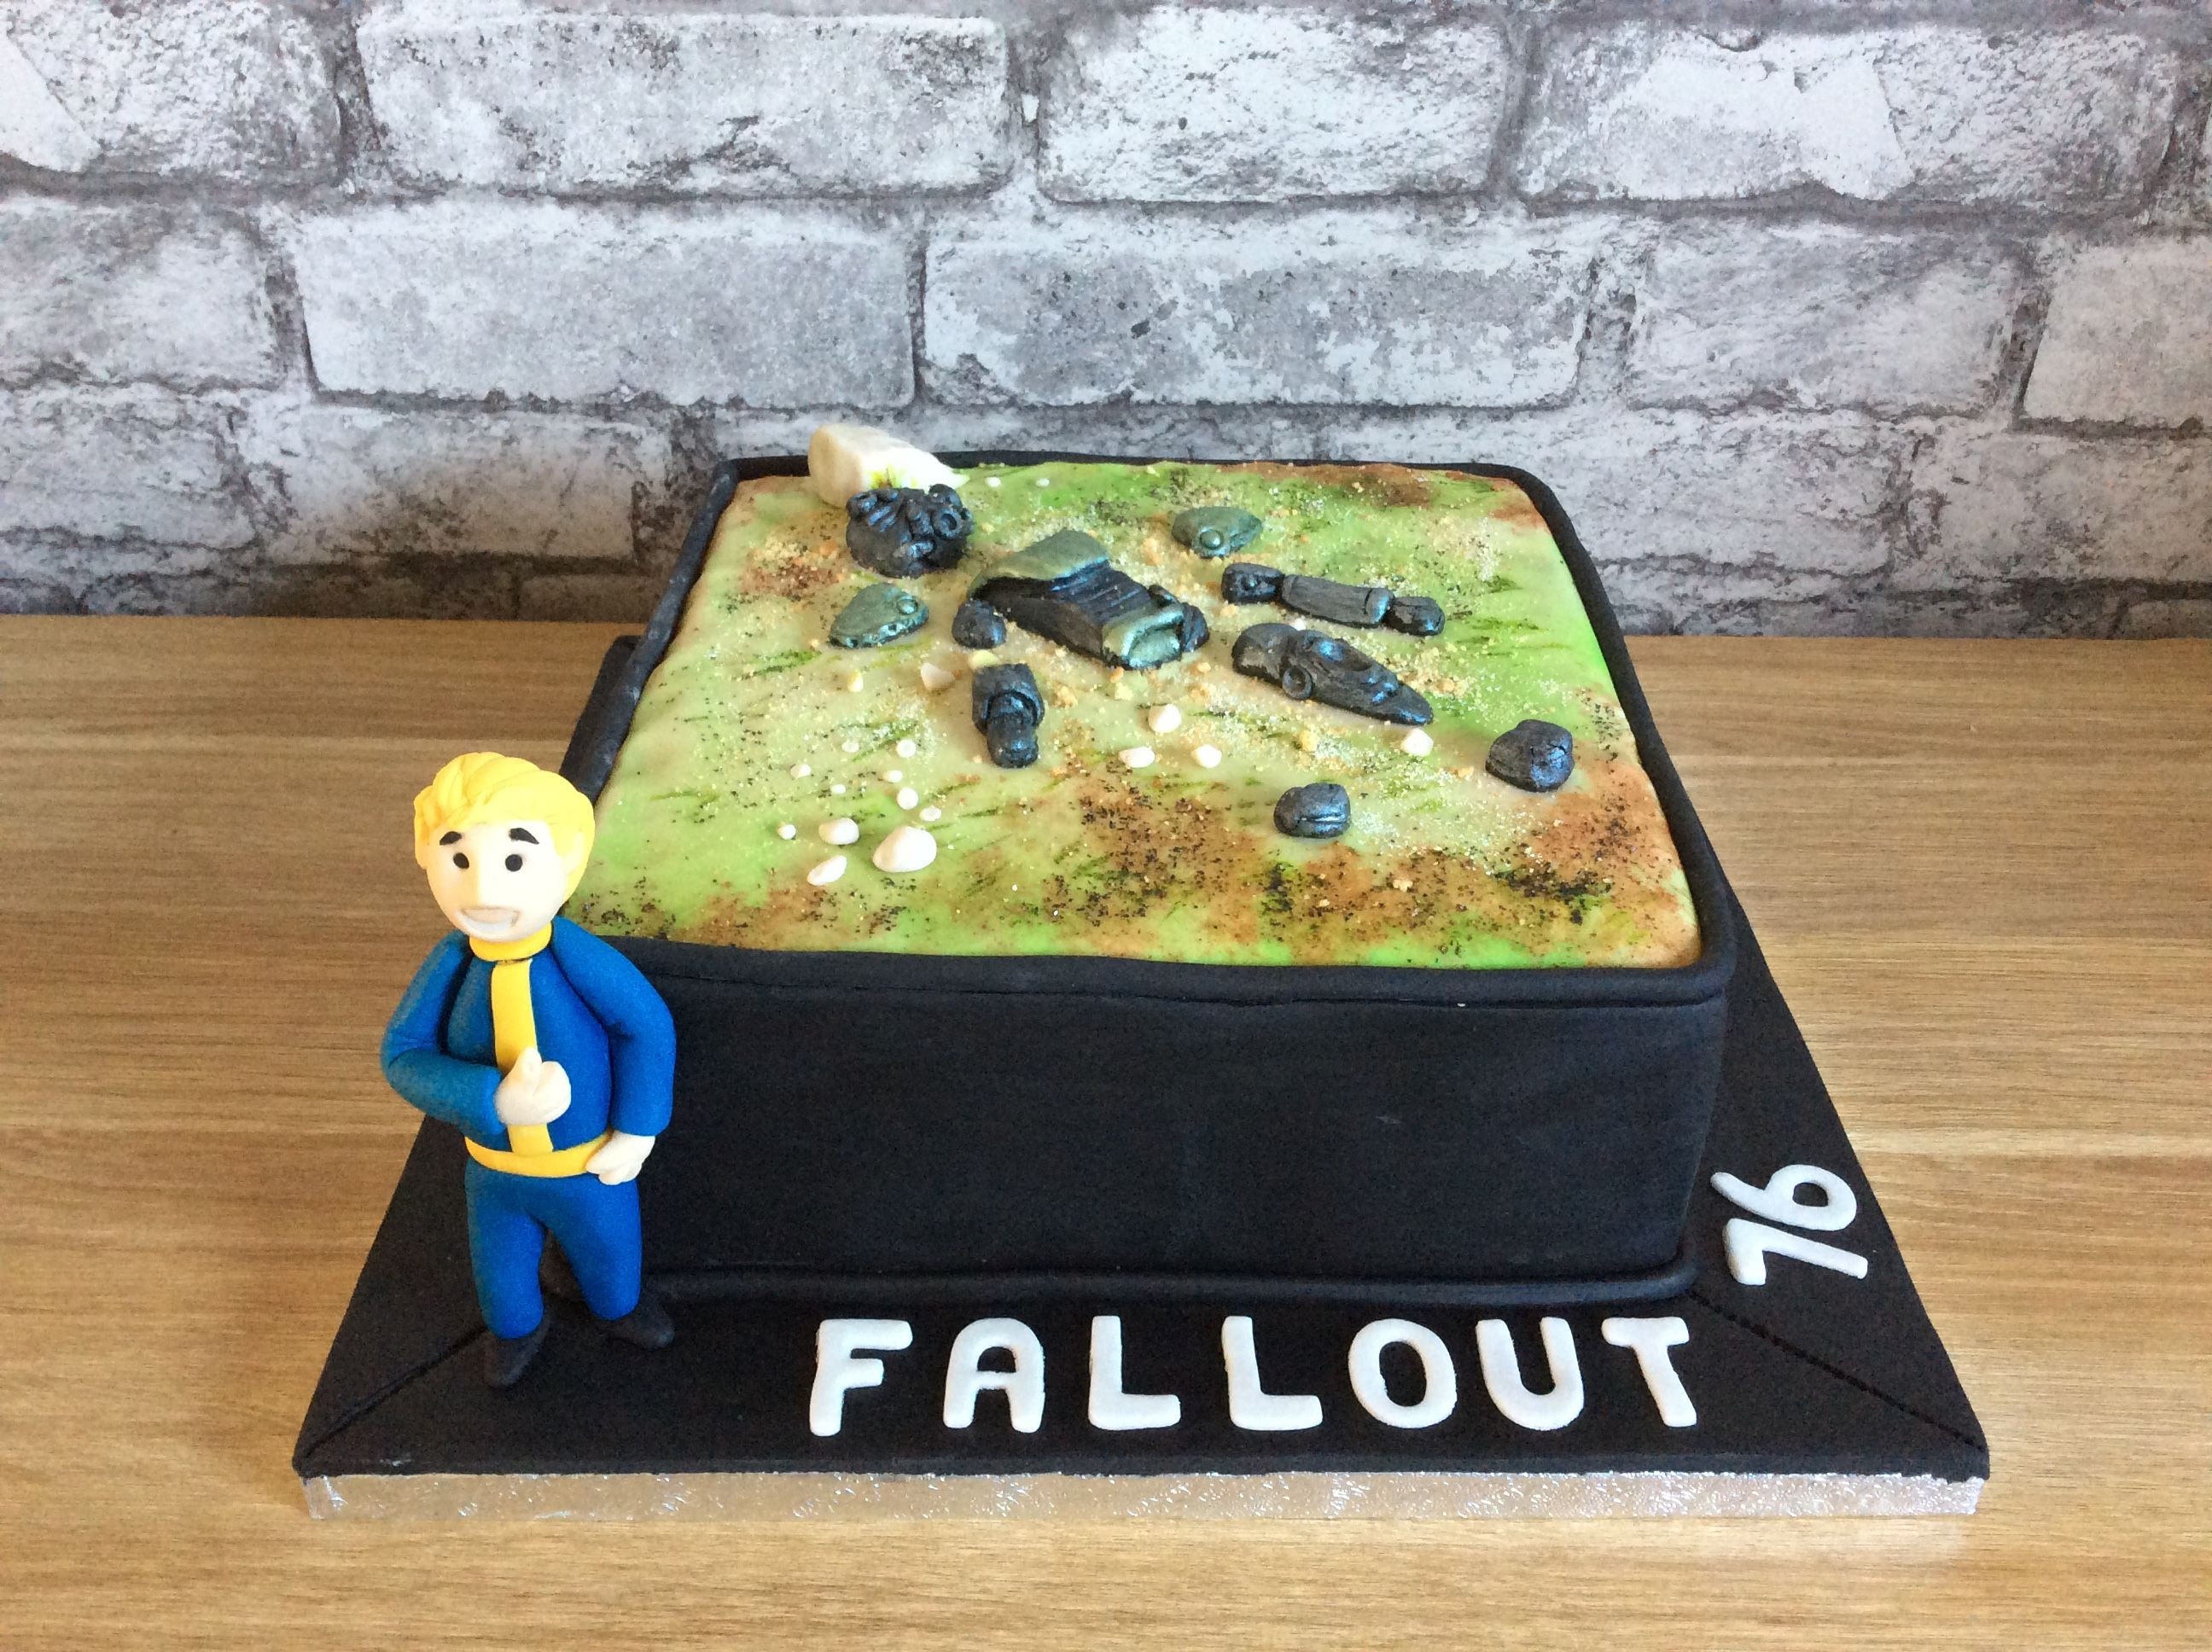 Fallout Birthday Cake  Fallout 76 themed birthday cake x Quick Saves